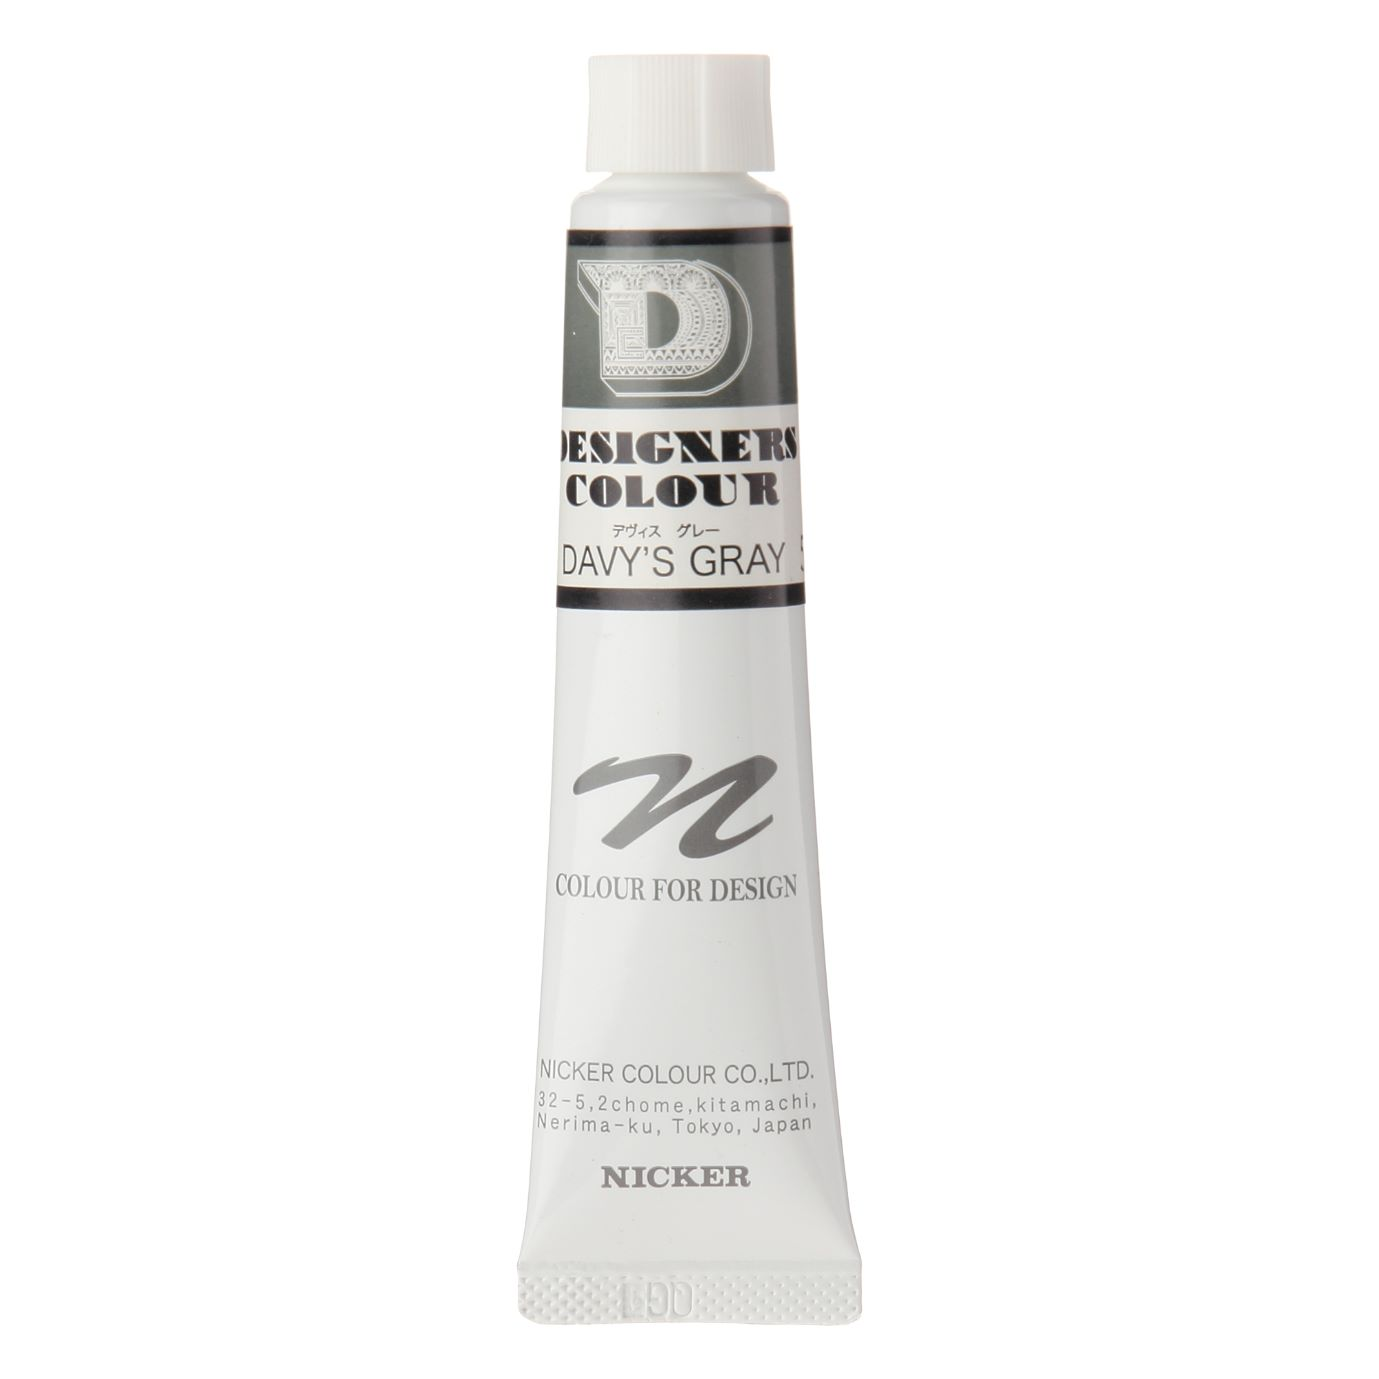 DESIGNERS COLOUR 20ml 594 DAVY'S GRAY